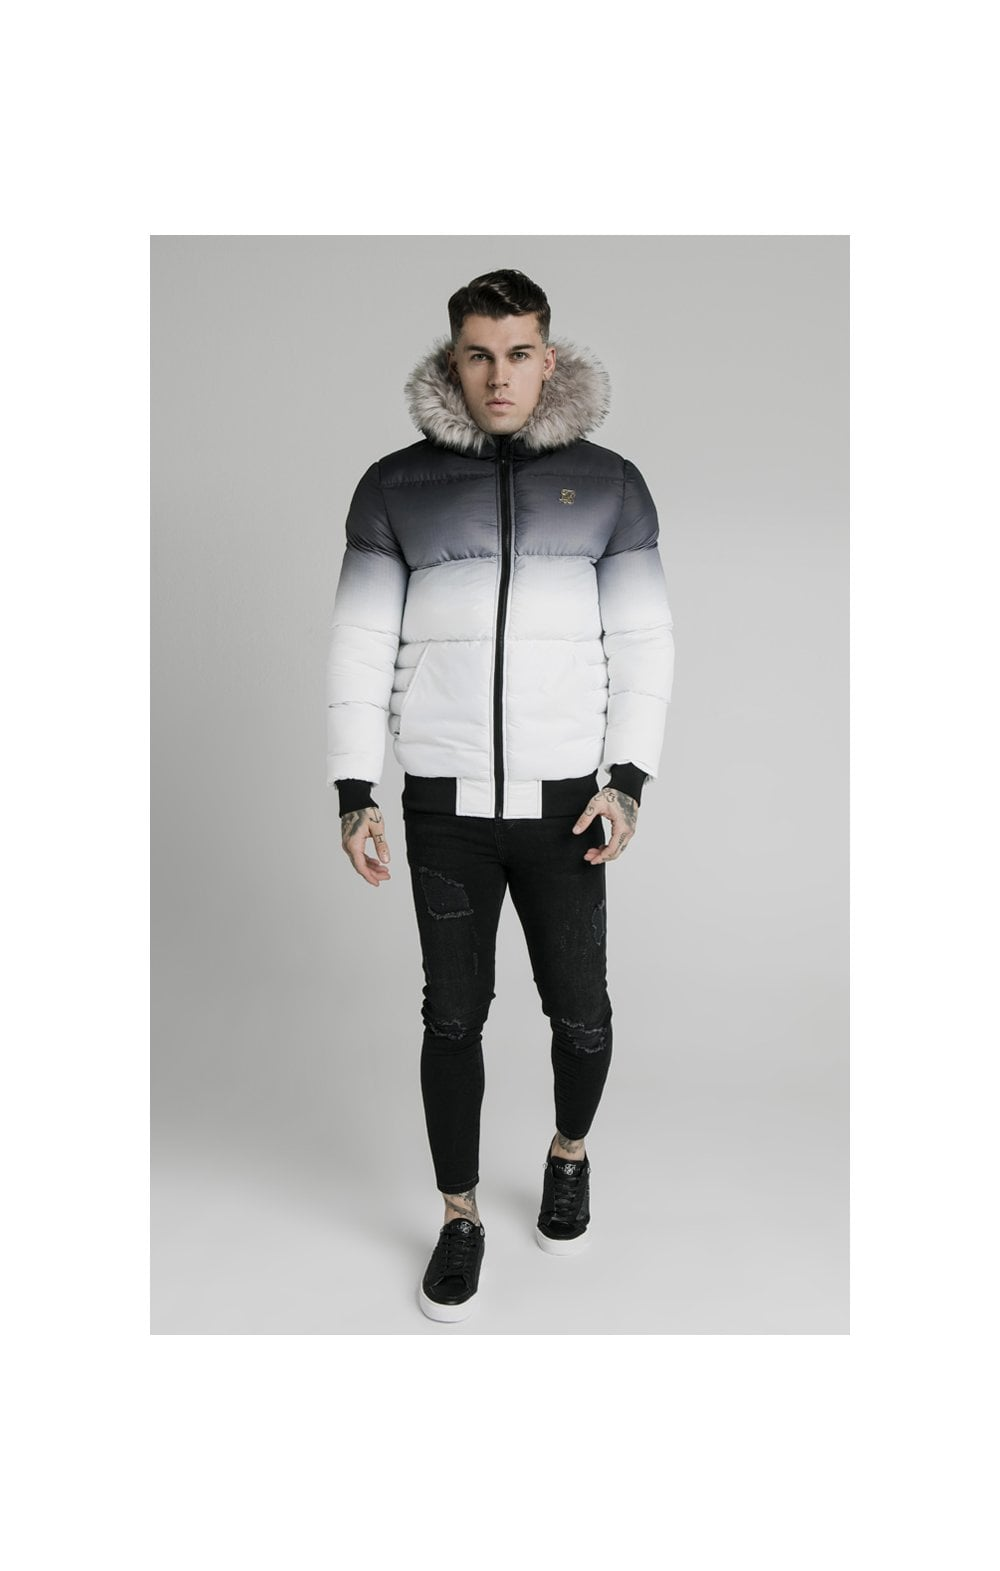 SikSilk Rip Stop Distance Jacket - Black & White (2)